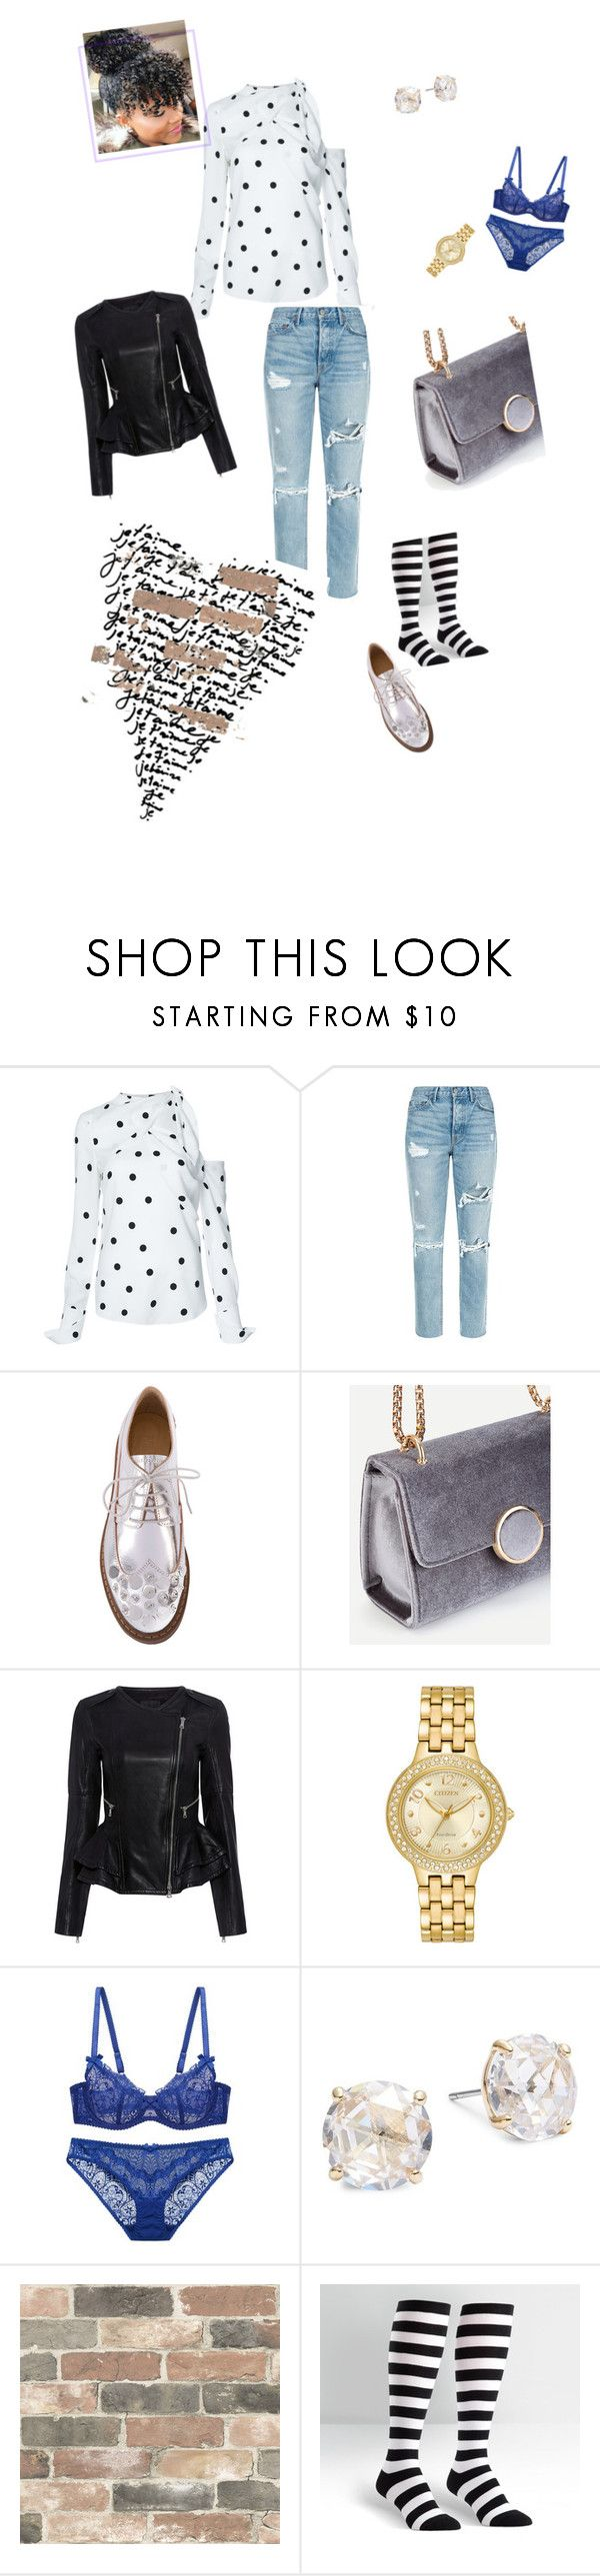 """""""Peace & Blessings"""" by lady-jordan ❤ liked on Polyvore featuring Monse, GRLFRND, MM6 Maison Margiela, Marissa Webb, Citizen, Kate Spade, Wall Pops! and Sock It To Me"""